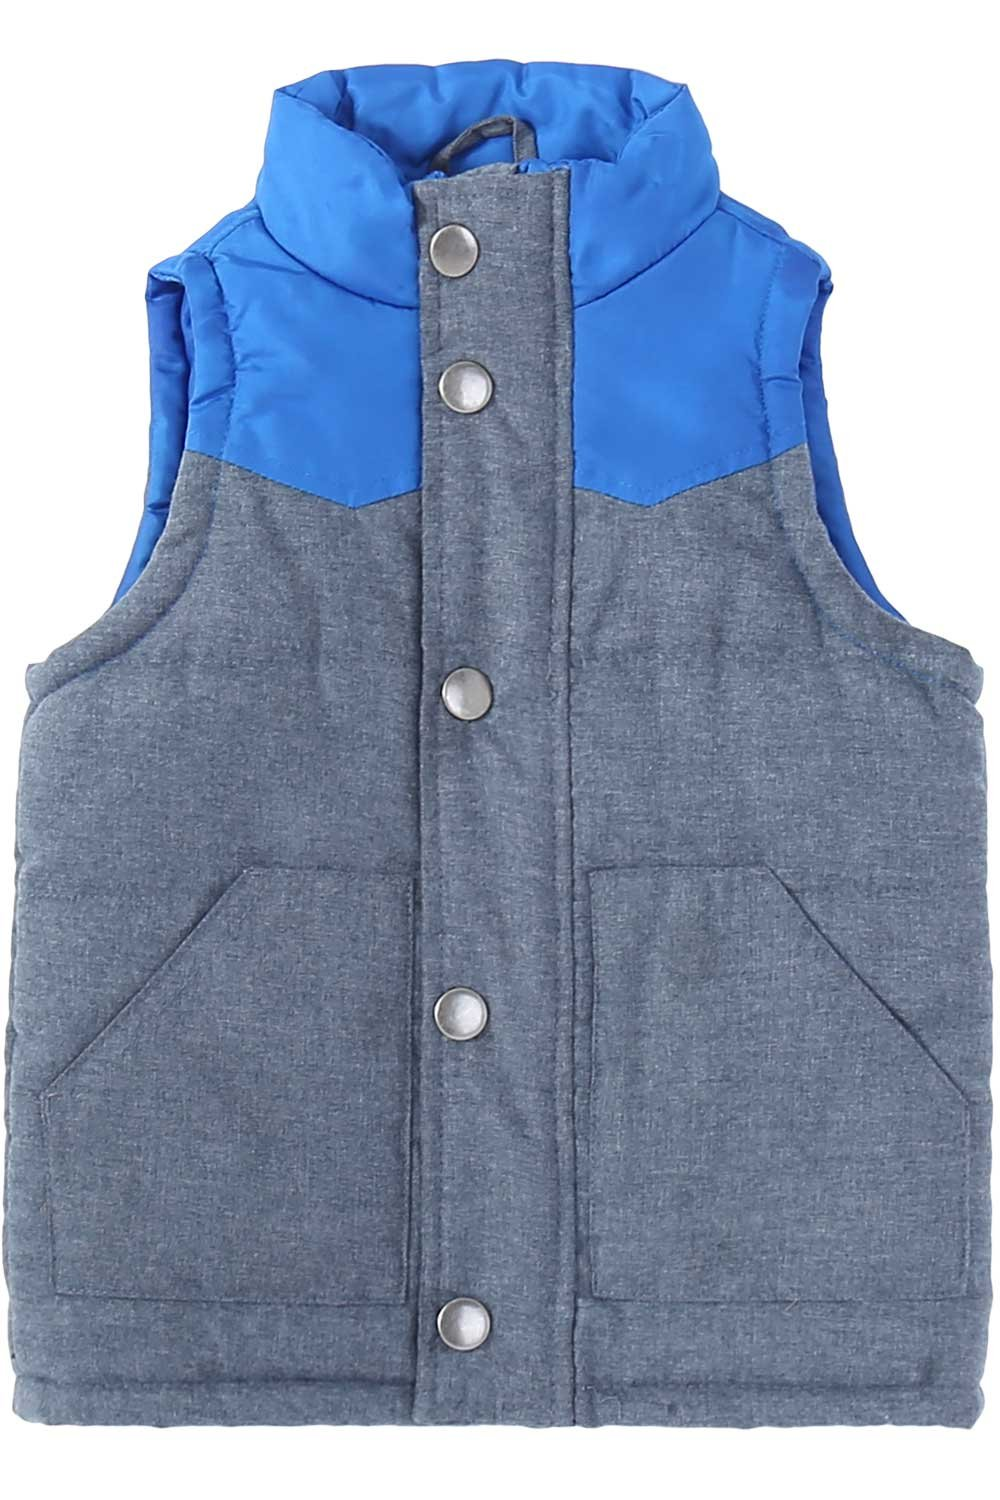 Bienzoe Little Boy Zip Quilted Sleeveless Warm Cotton-Padded Gilets